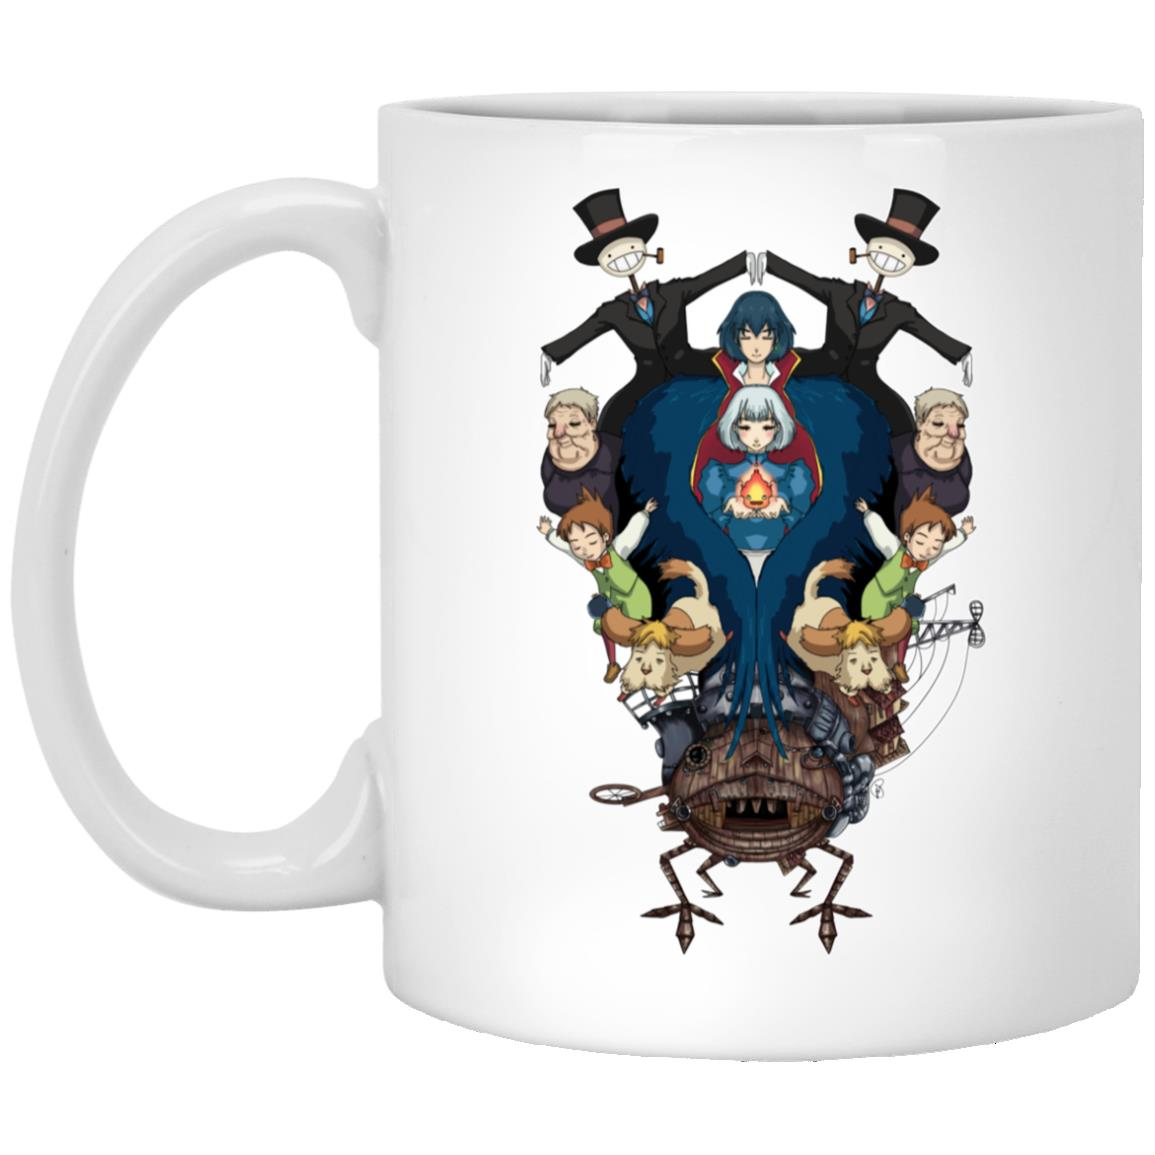 Howl's Moving Castle Characters Mirror Mug